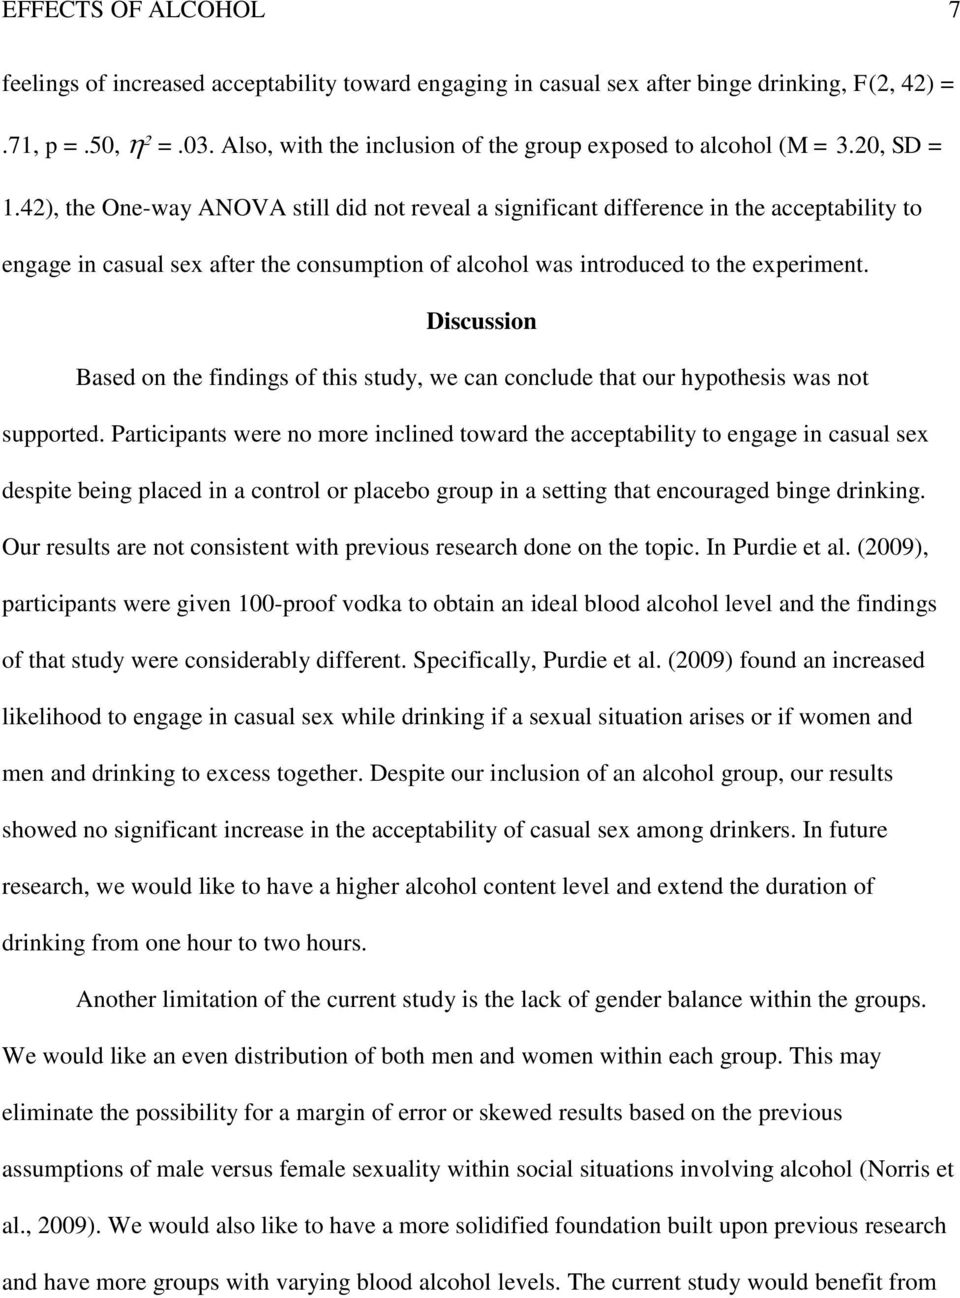 42), the One-way ANOVA still did not reveal a significant difference in the acceptability to engage in casual sex after the consumption of alcohol was introduced to the experiment.